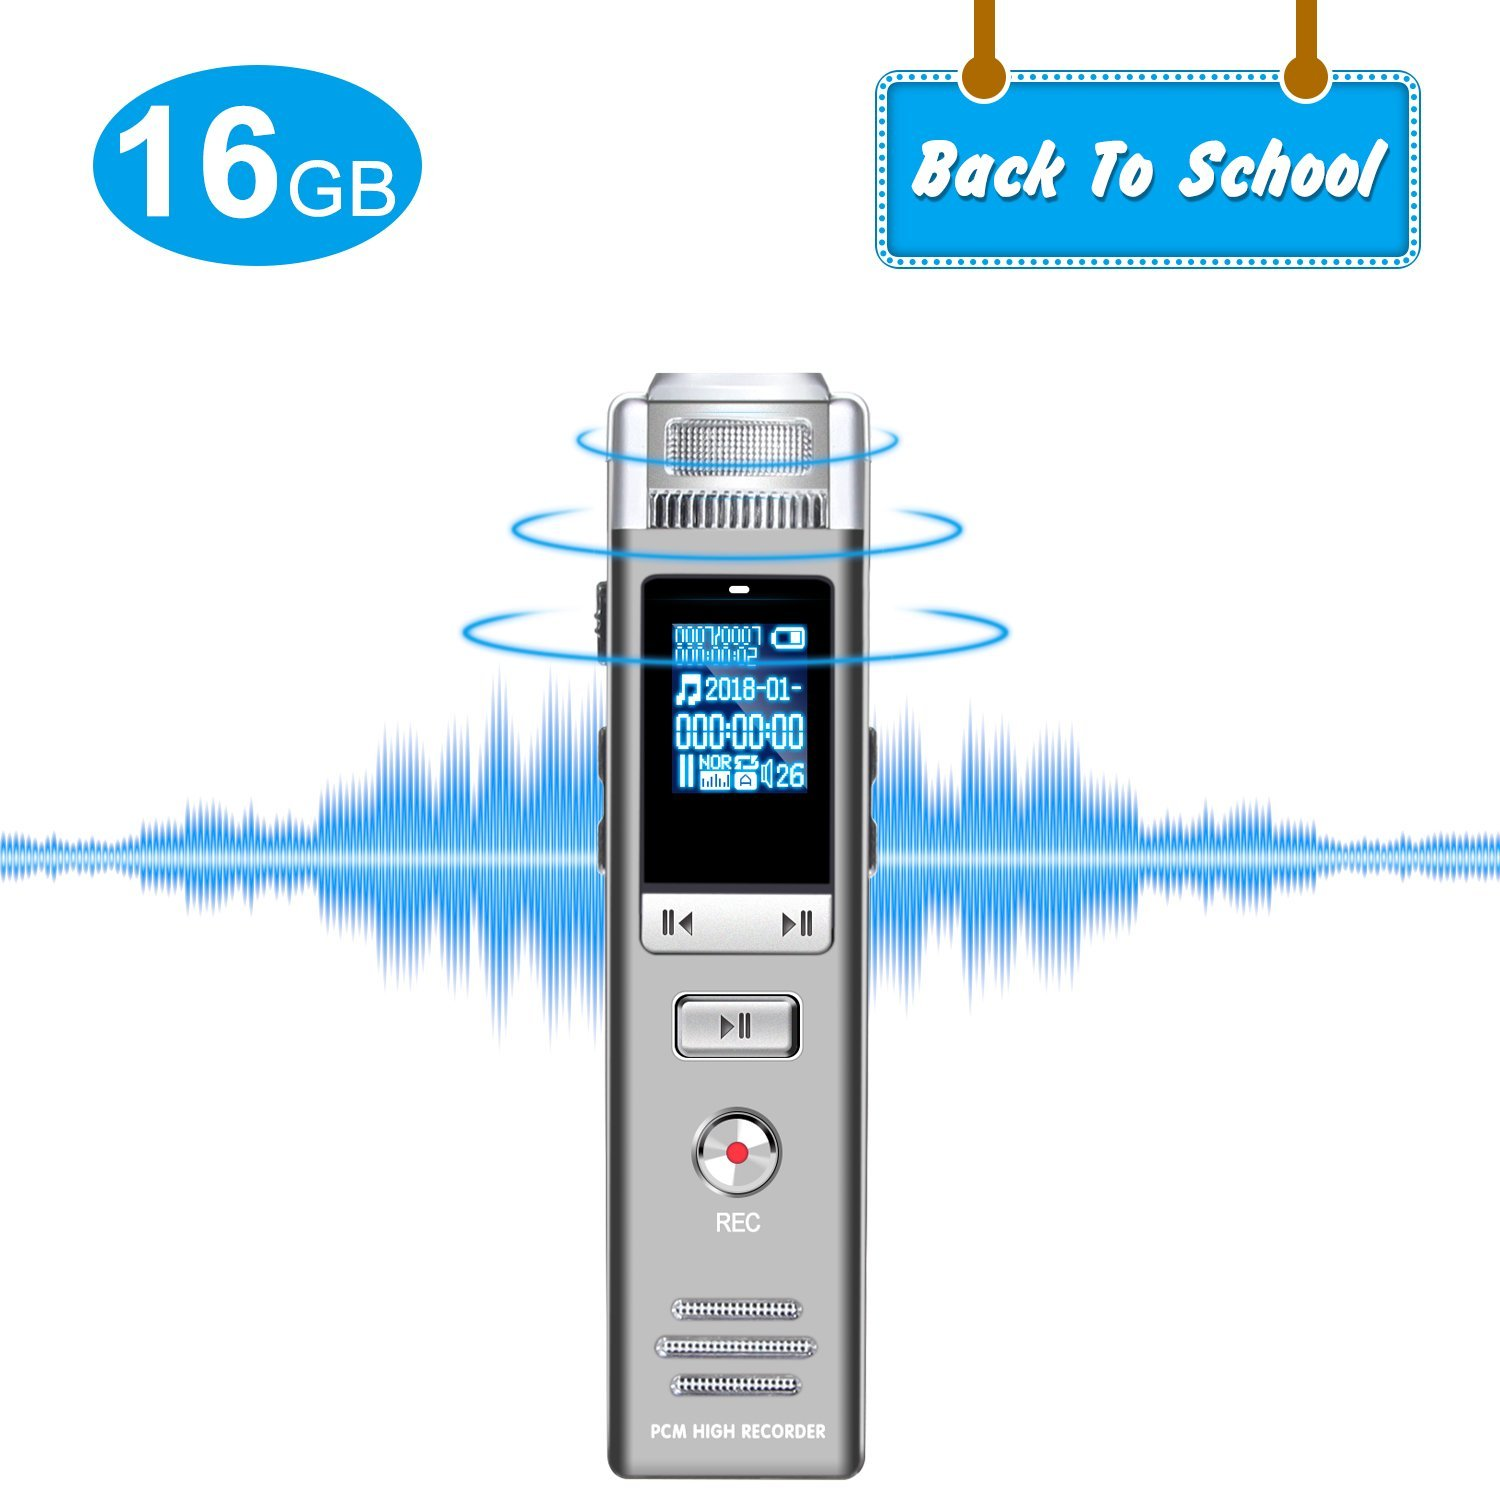 Digital Voice Recorder, 16GB Denoise Sound Voice Activated Recorder With Hi-fi sound effect MP3 Player, Dynamic Noise Reduction Voice-activated Recorder Suitable for Lectures/Classes/ Business Meeting